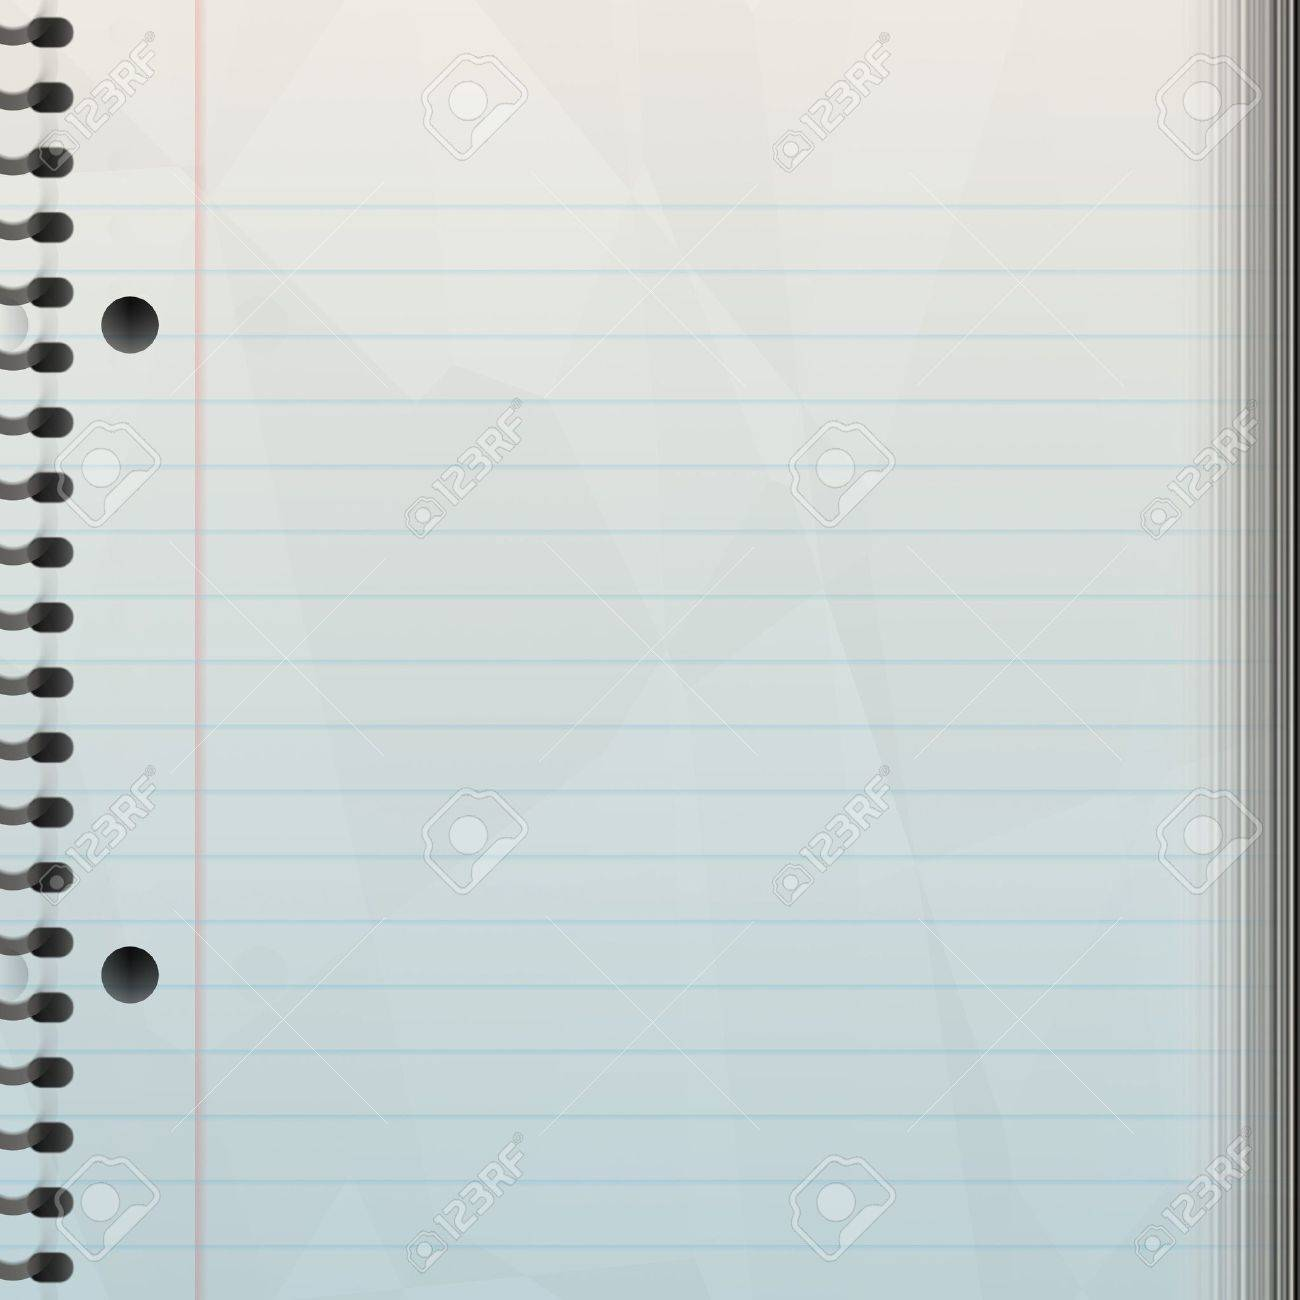 A blank notepad background - great backdrop to let your creativity loose on. Stock Photo - 2429197